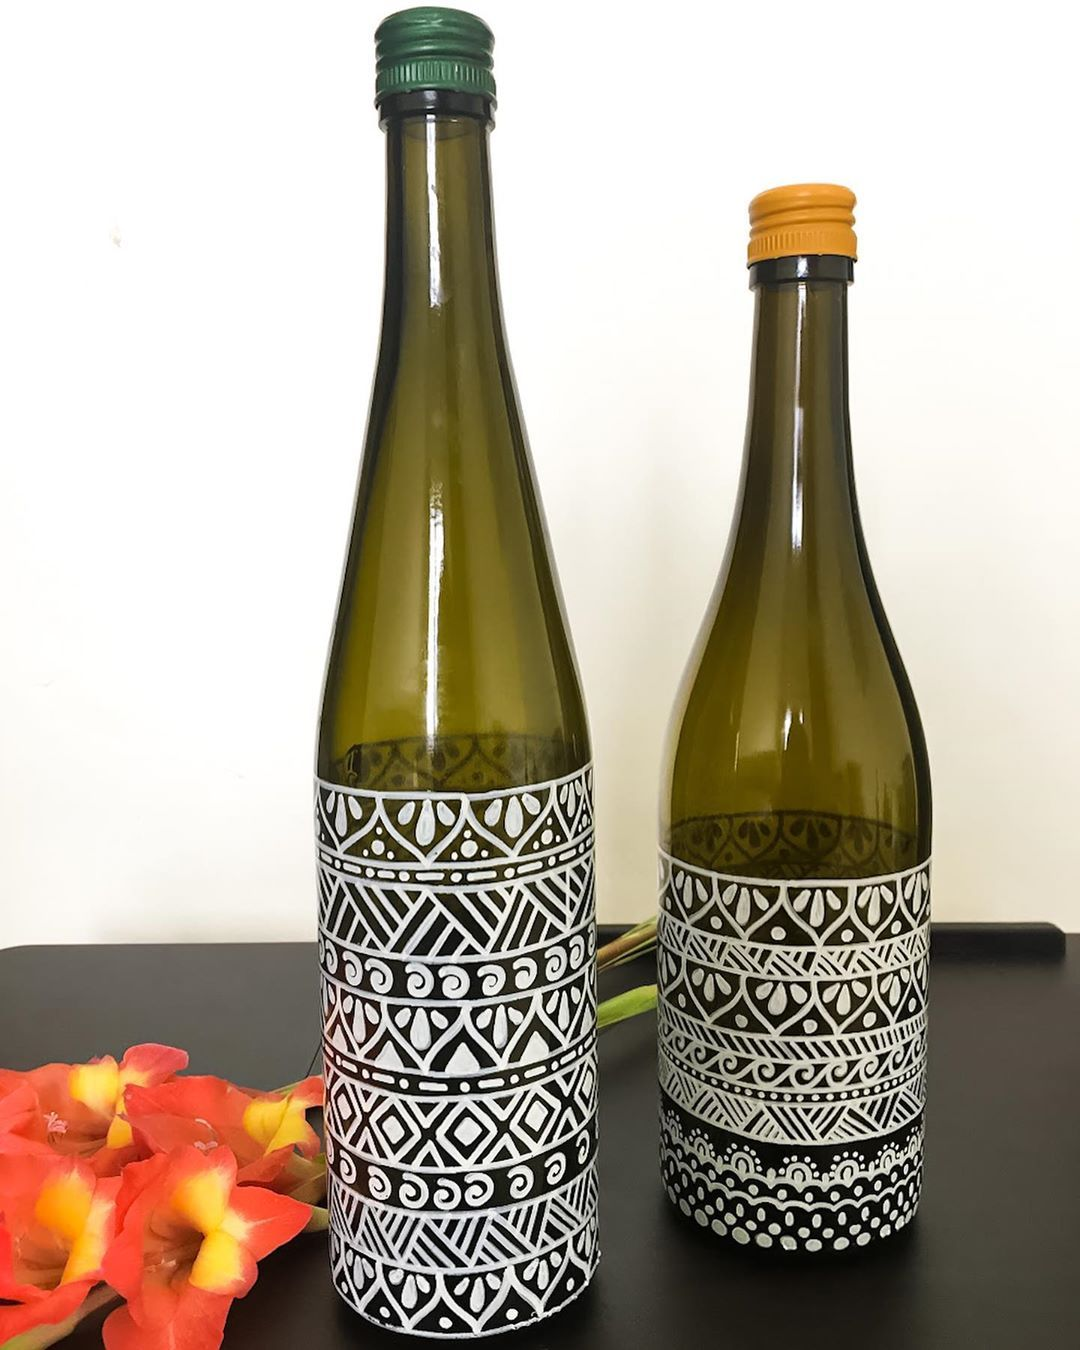 40+ Designs to paint on glass bottles ideas in 2021